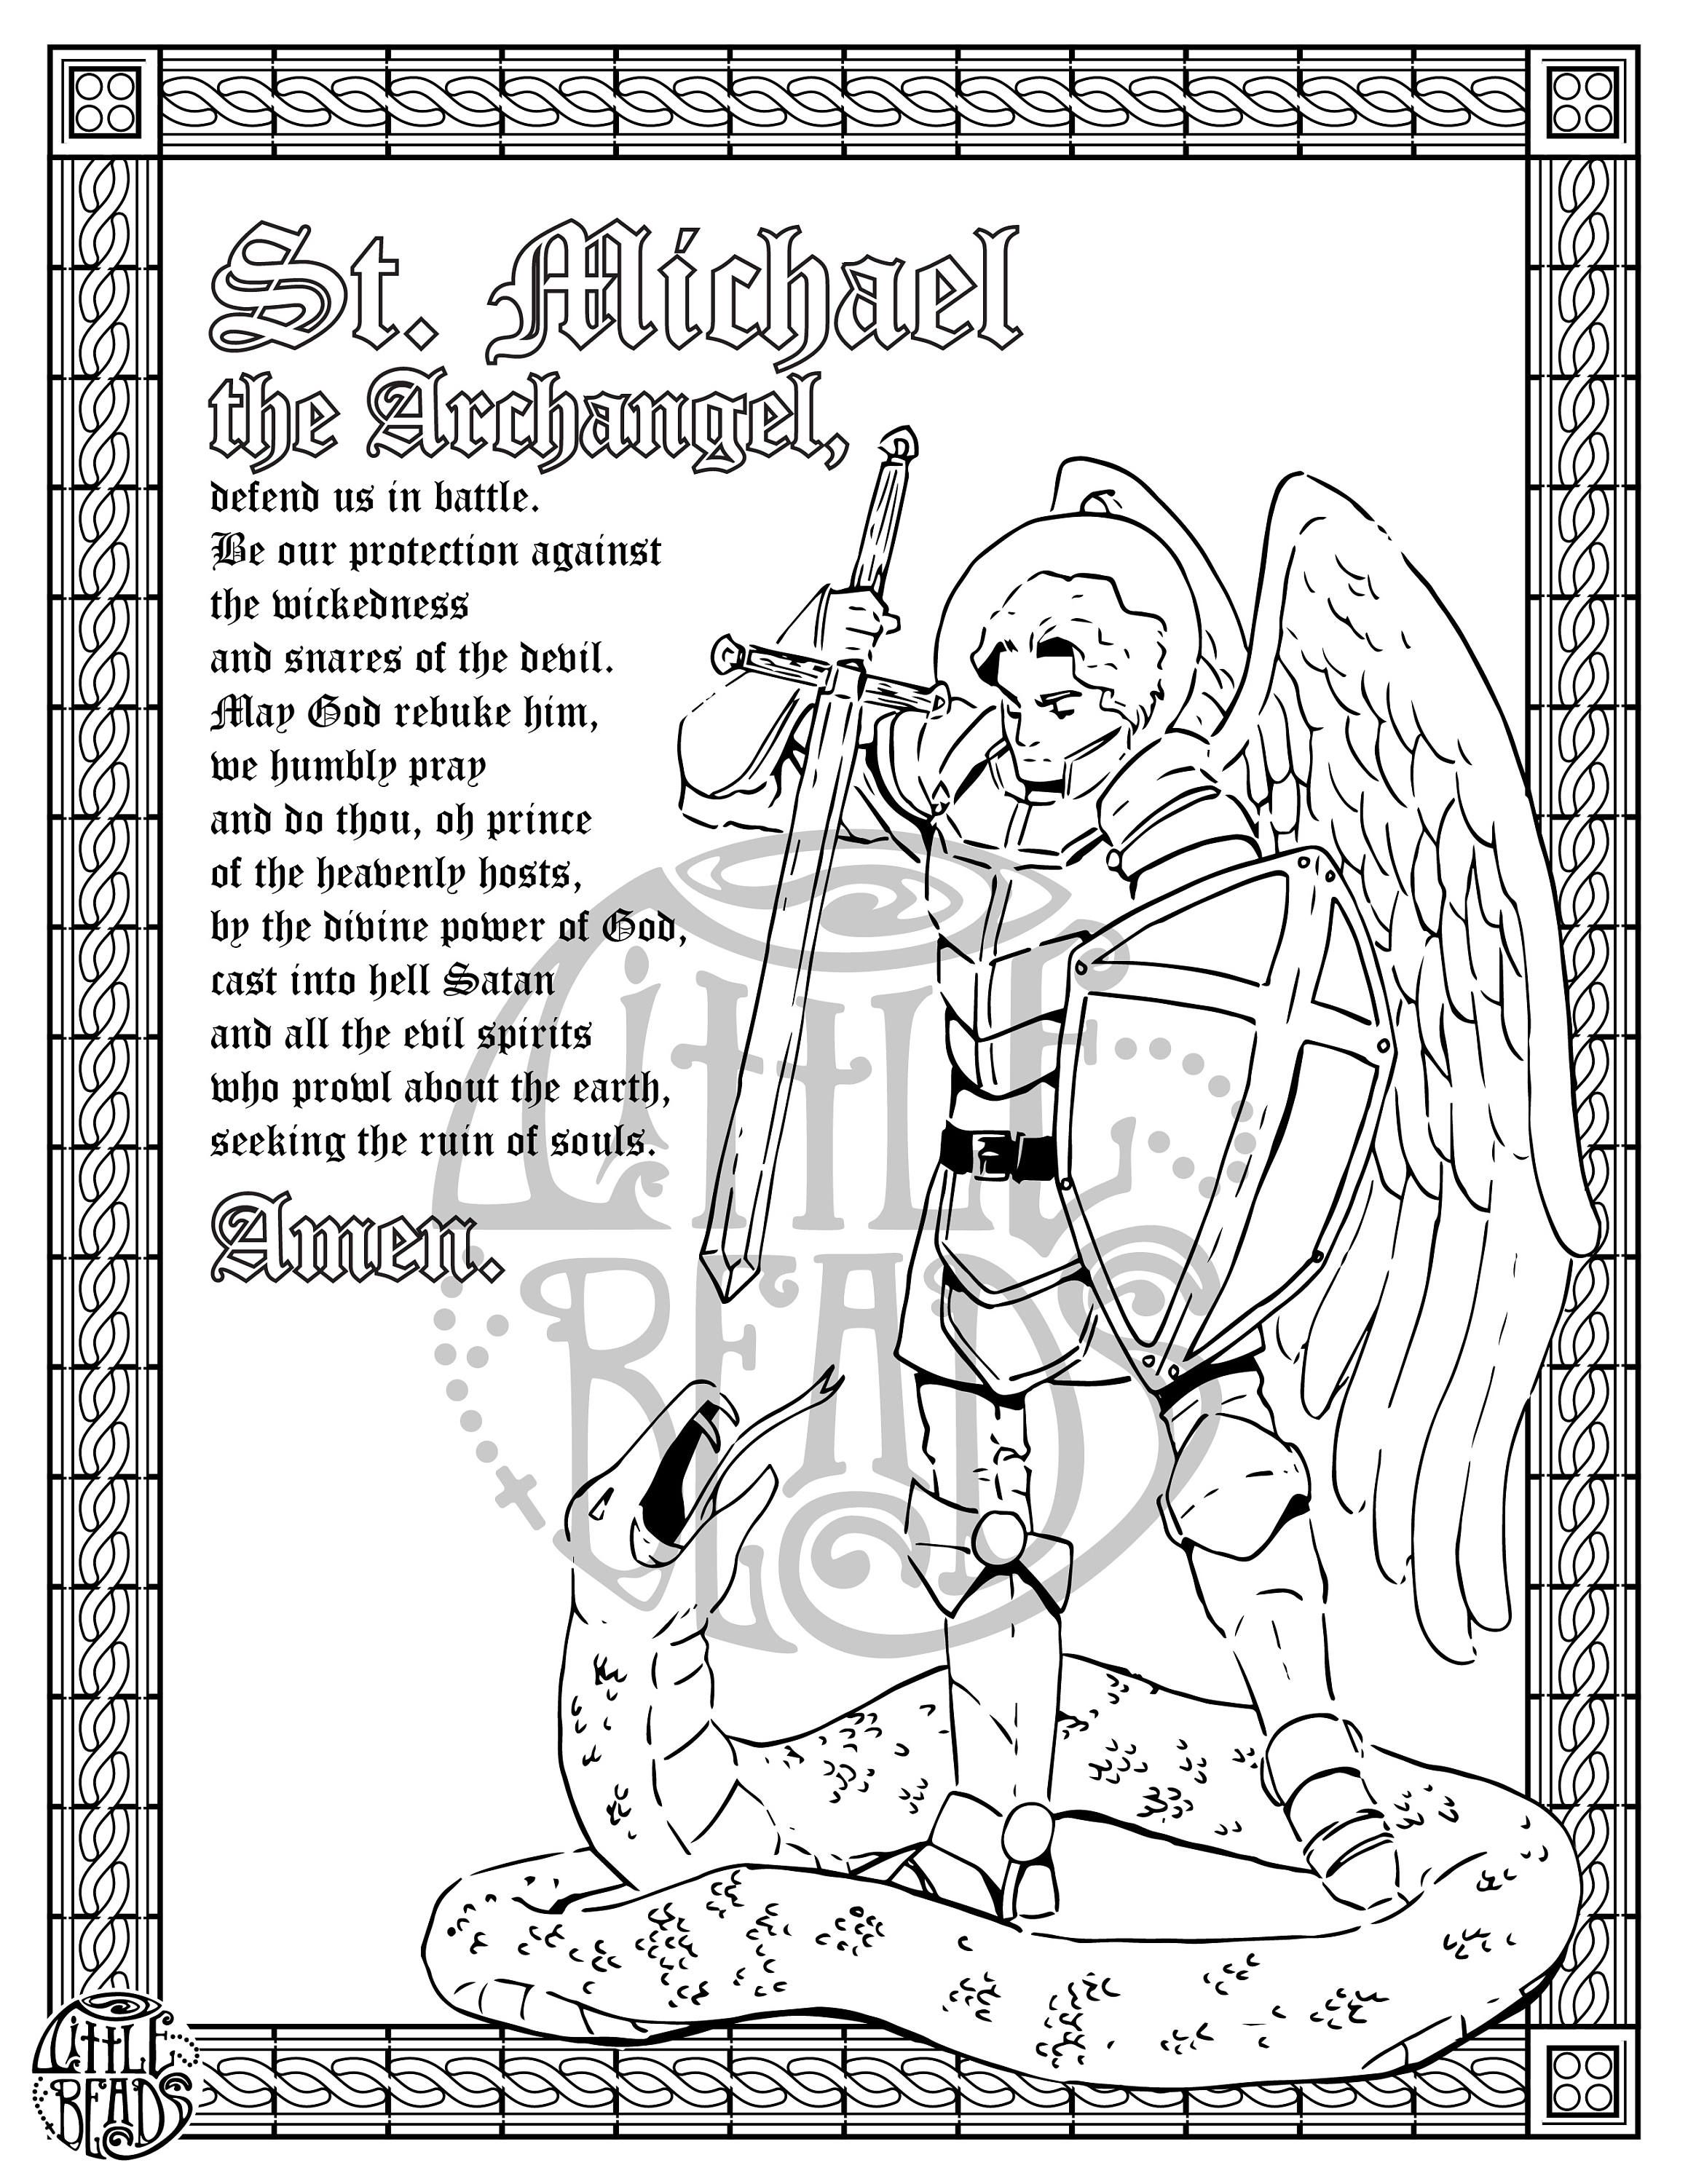 St Michael Printable Perfect For Coloring Coloring Pages Designs Coloring Books St Michael